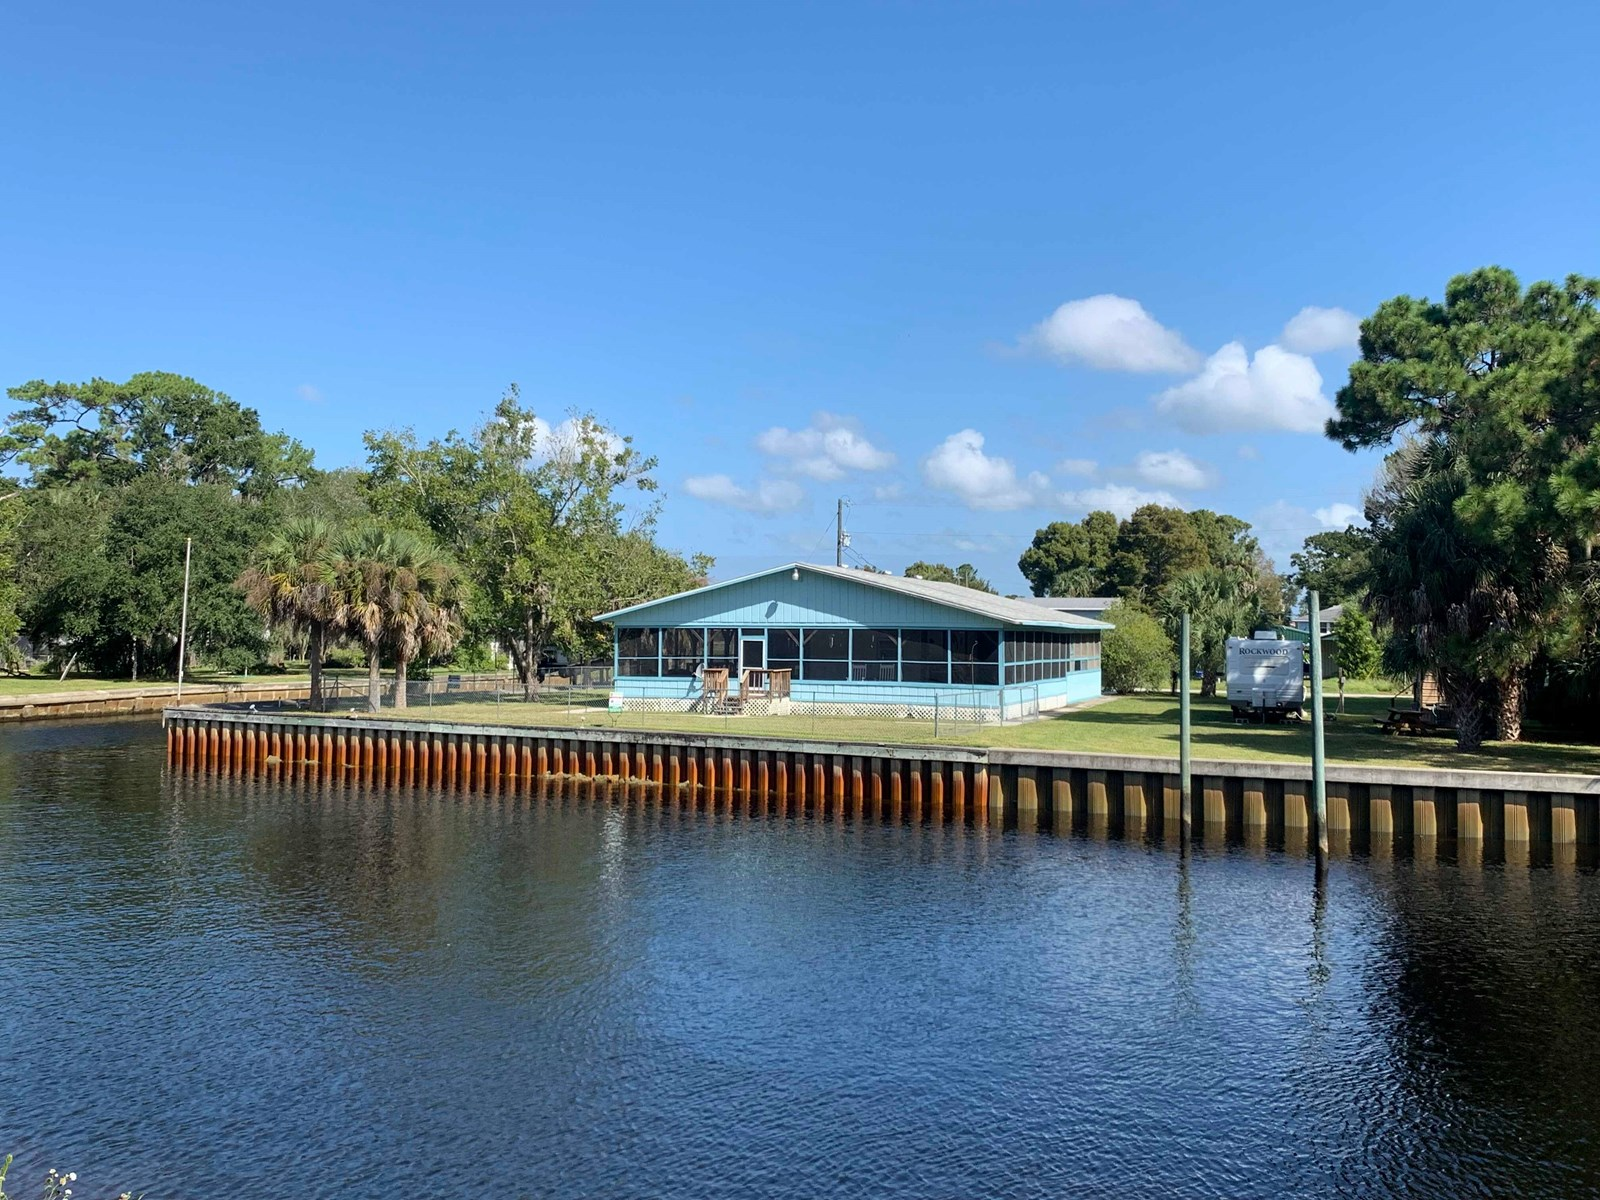 WATERFRONT HOME FOR SALE, SUWANNEE FLORIDA